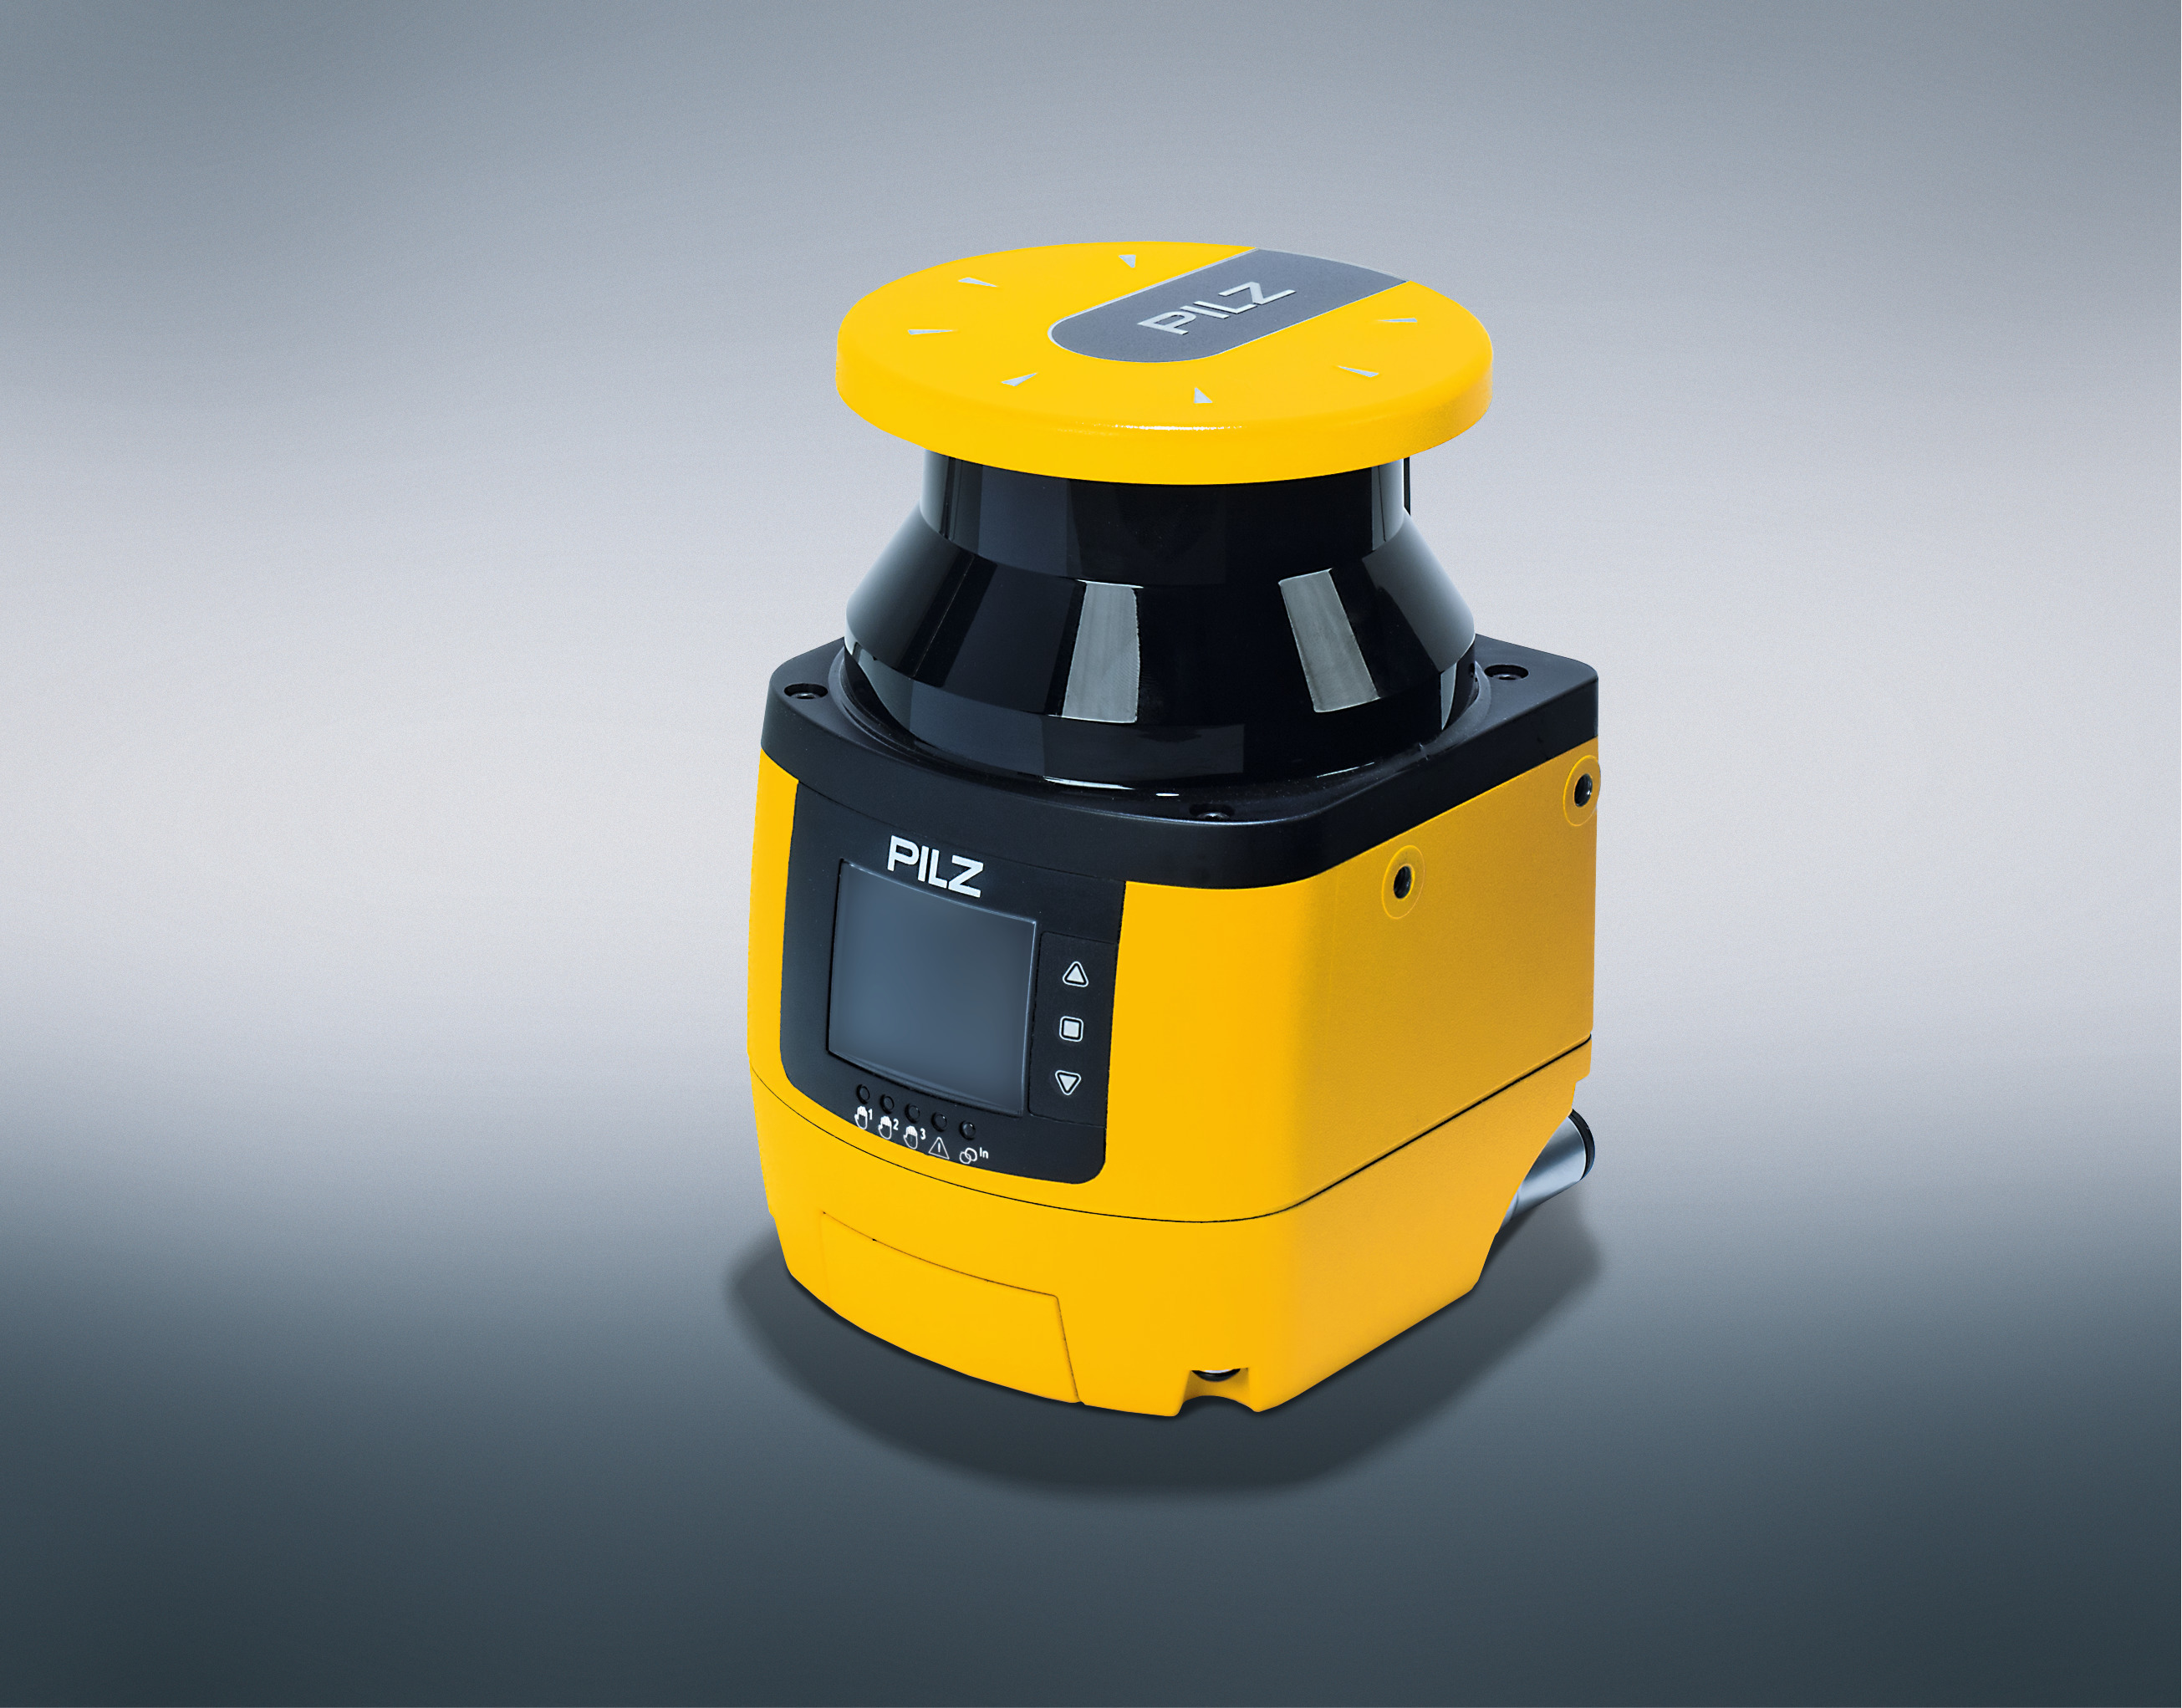 <center>Pilz offers now the new master/slave safety laser scanner PSENscan for a productive area monitoring!</center>